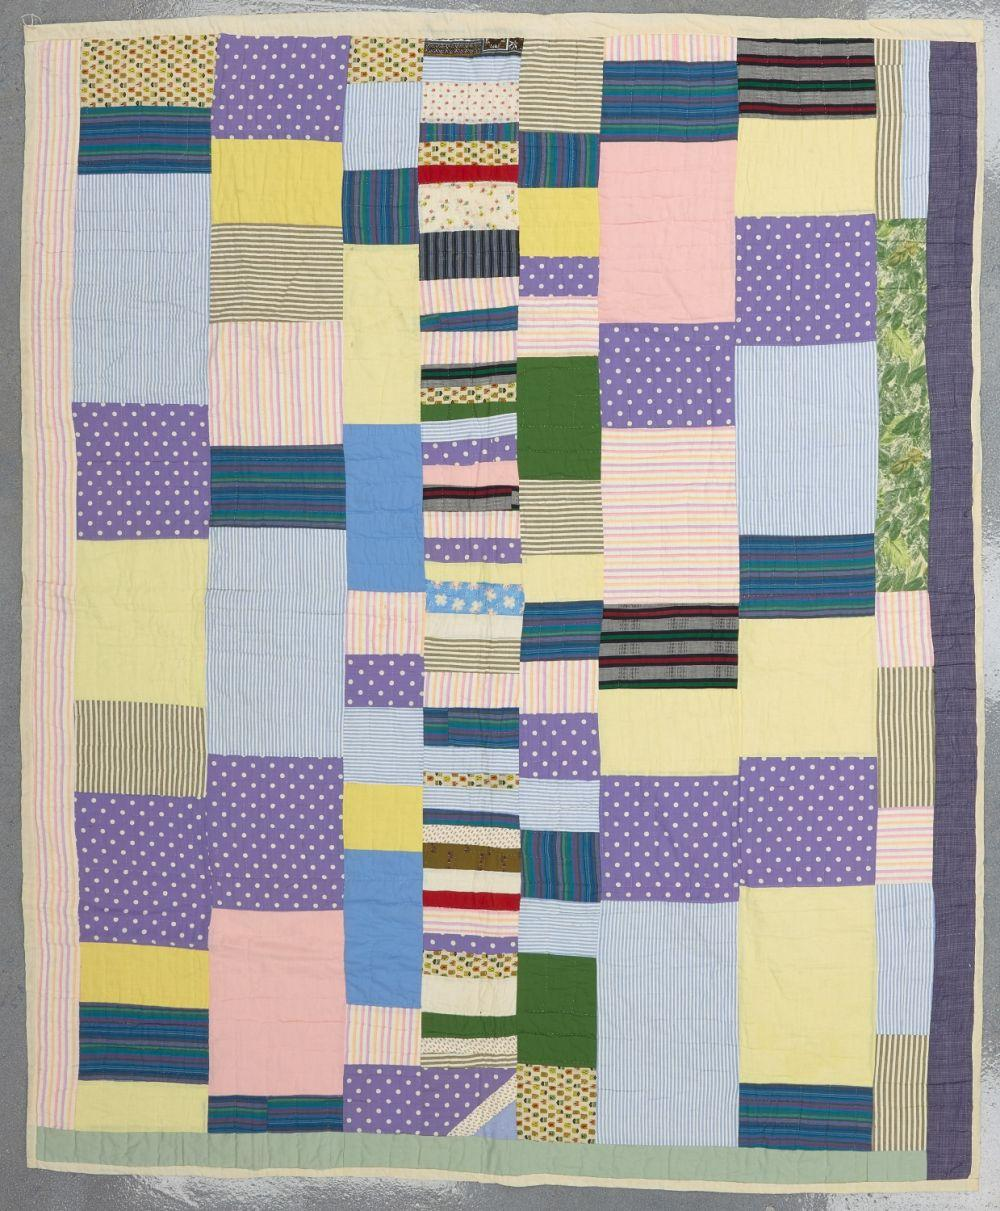 Abstract Modernist Vintage Quilt